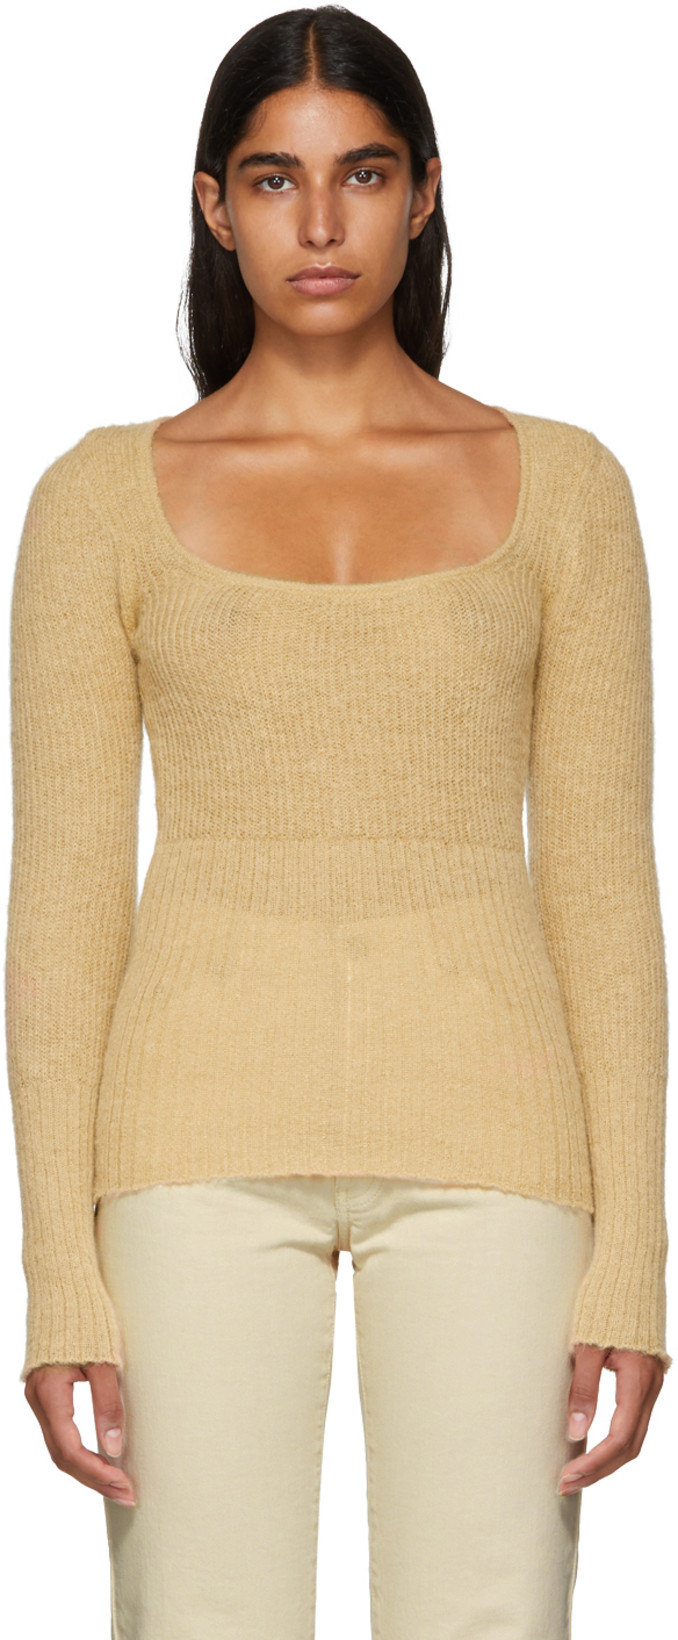 Jacquemus Beige La Mailel Dao sweater - Baby it's cold outside so wrap up warm, but baby don't you want to feel sexy too? Let Simon Porte Jacquemus help you do both. Made from 34% alpaca, 34% mohair, 32% polyamide in Portugal, this scoop rib neck is endless in use.